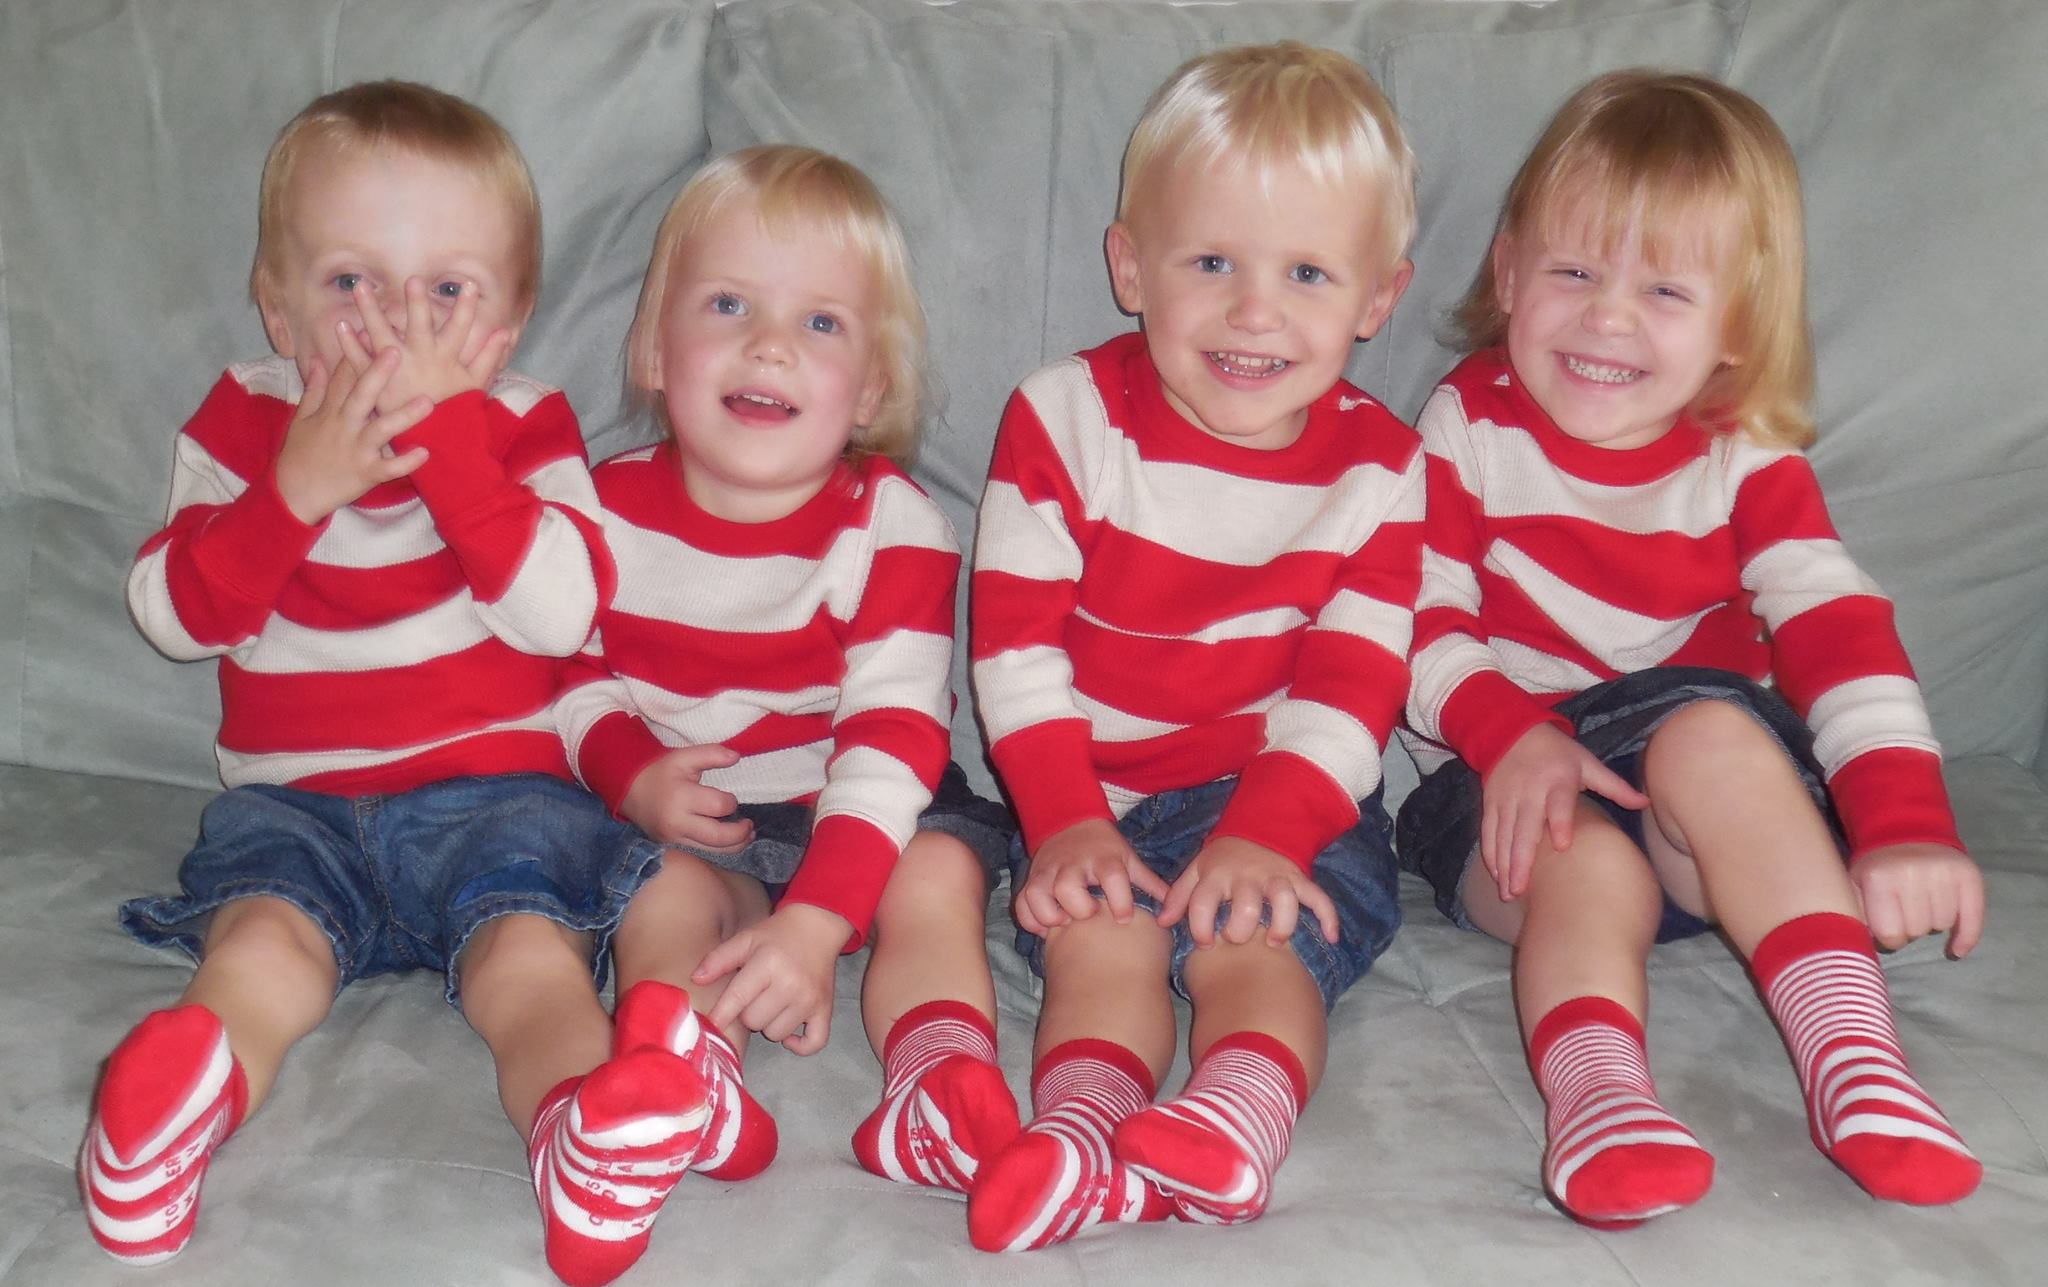 Larson quadruplet toddlers wearing matching red and white striped shirts